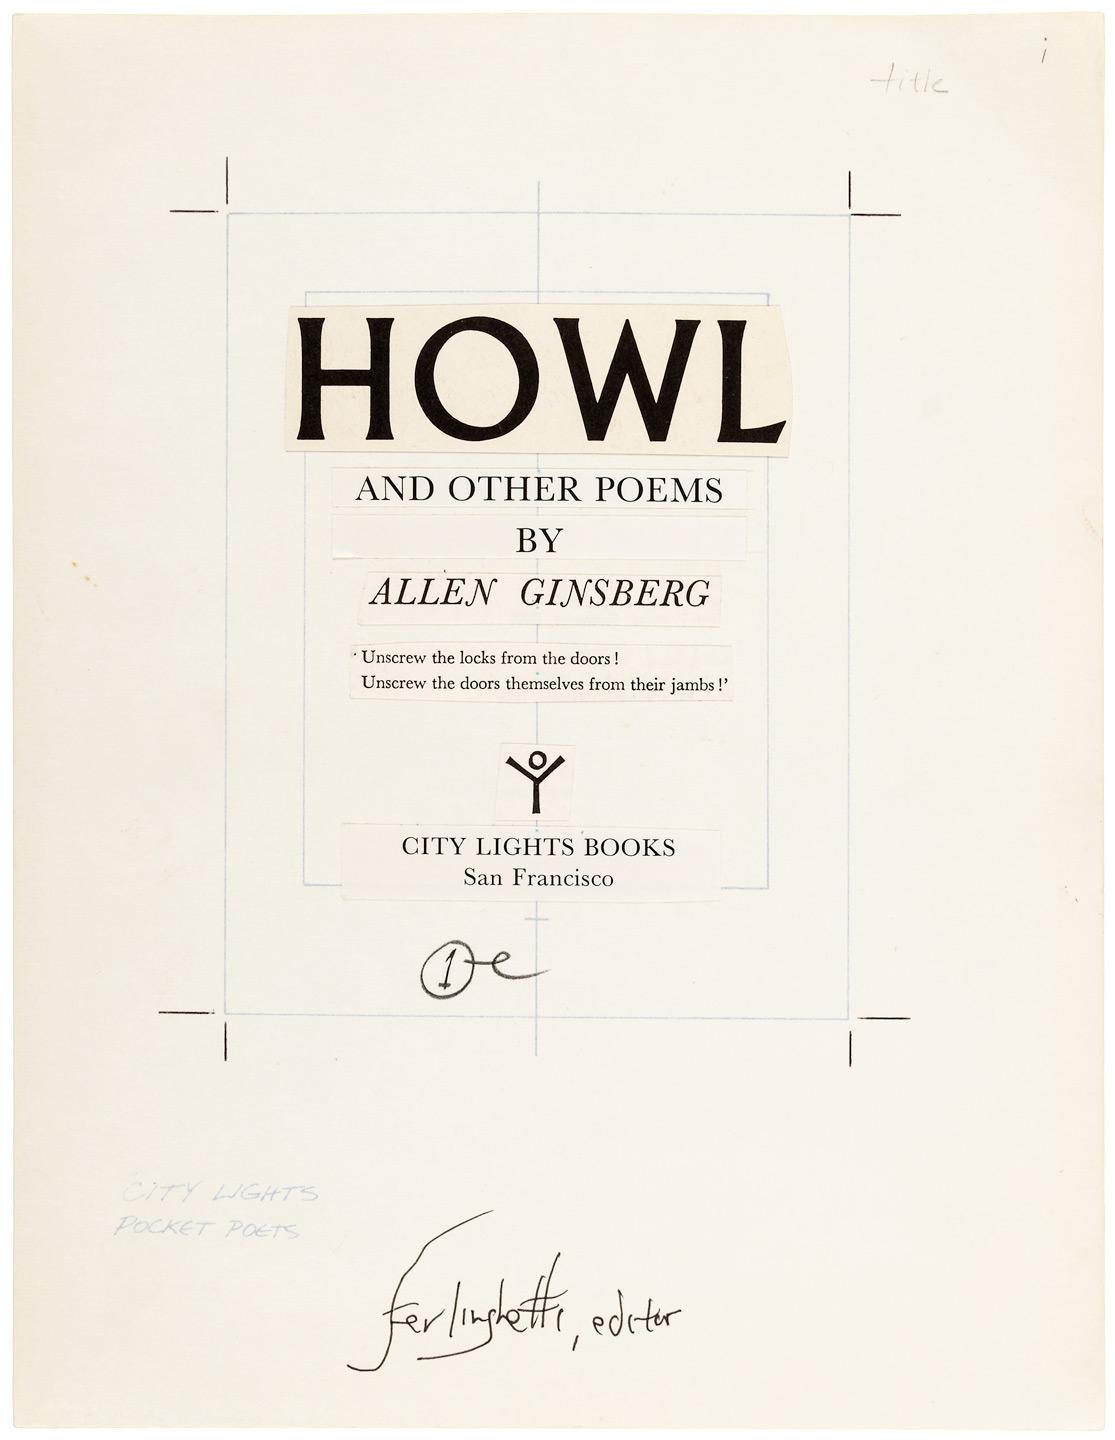 Howl and Other Poems - final page proofs signed by Lawrence Ferlinghetti -  Price Estimate: $500 - $800